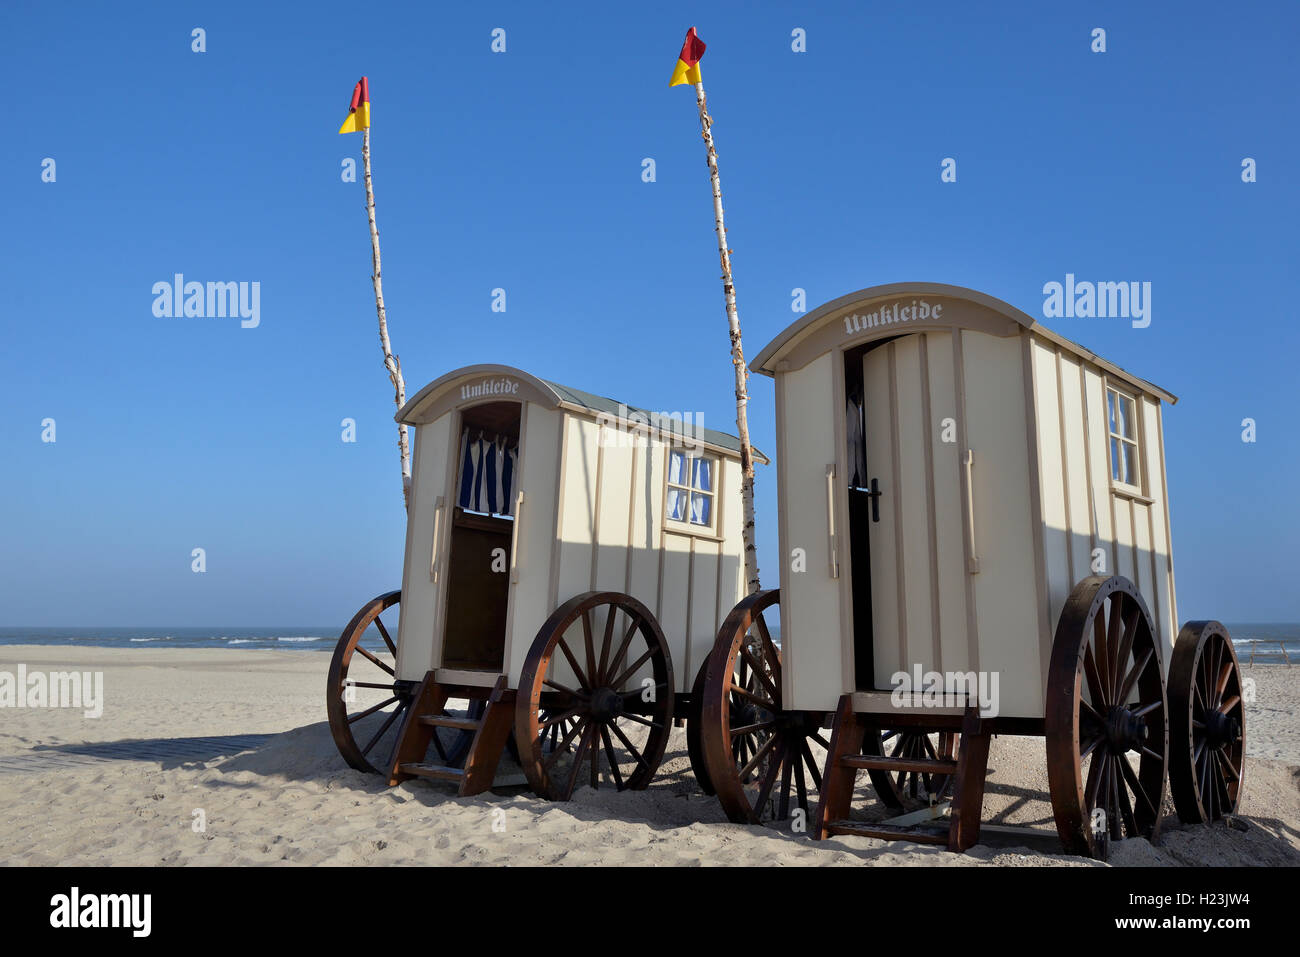 Changing cubicle wagon at Weiße Düne Oststrand beach, Norderney, East Frisian Islands, Lower Saxony, Germany - Stock Image